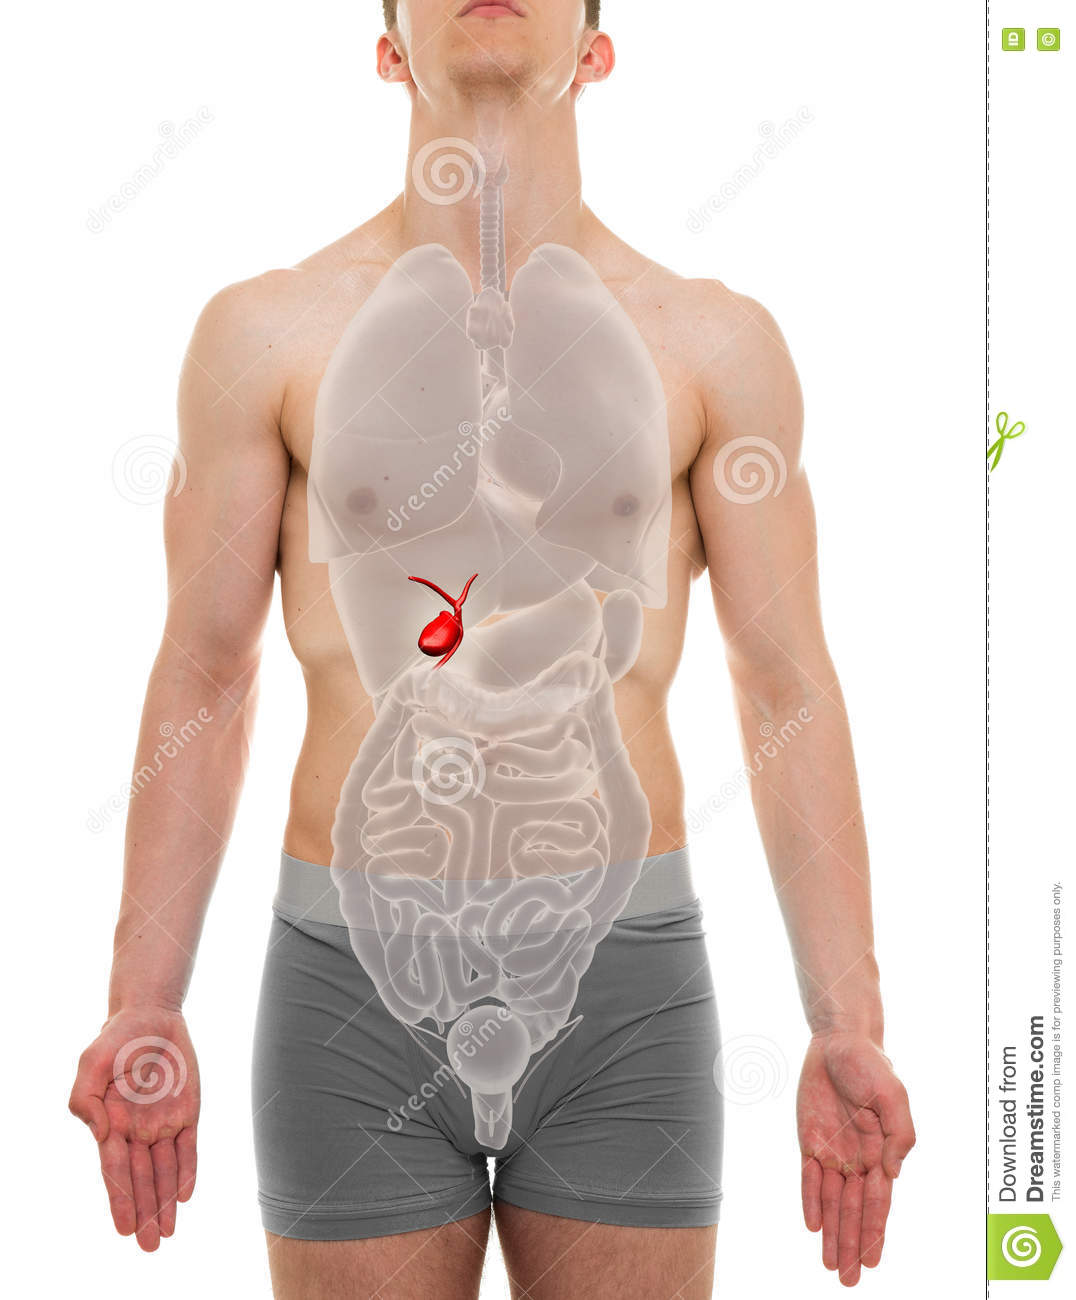 Gallbladder Male - Internal Organs Anatomy - 3D Illustration Stock ...